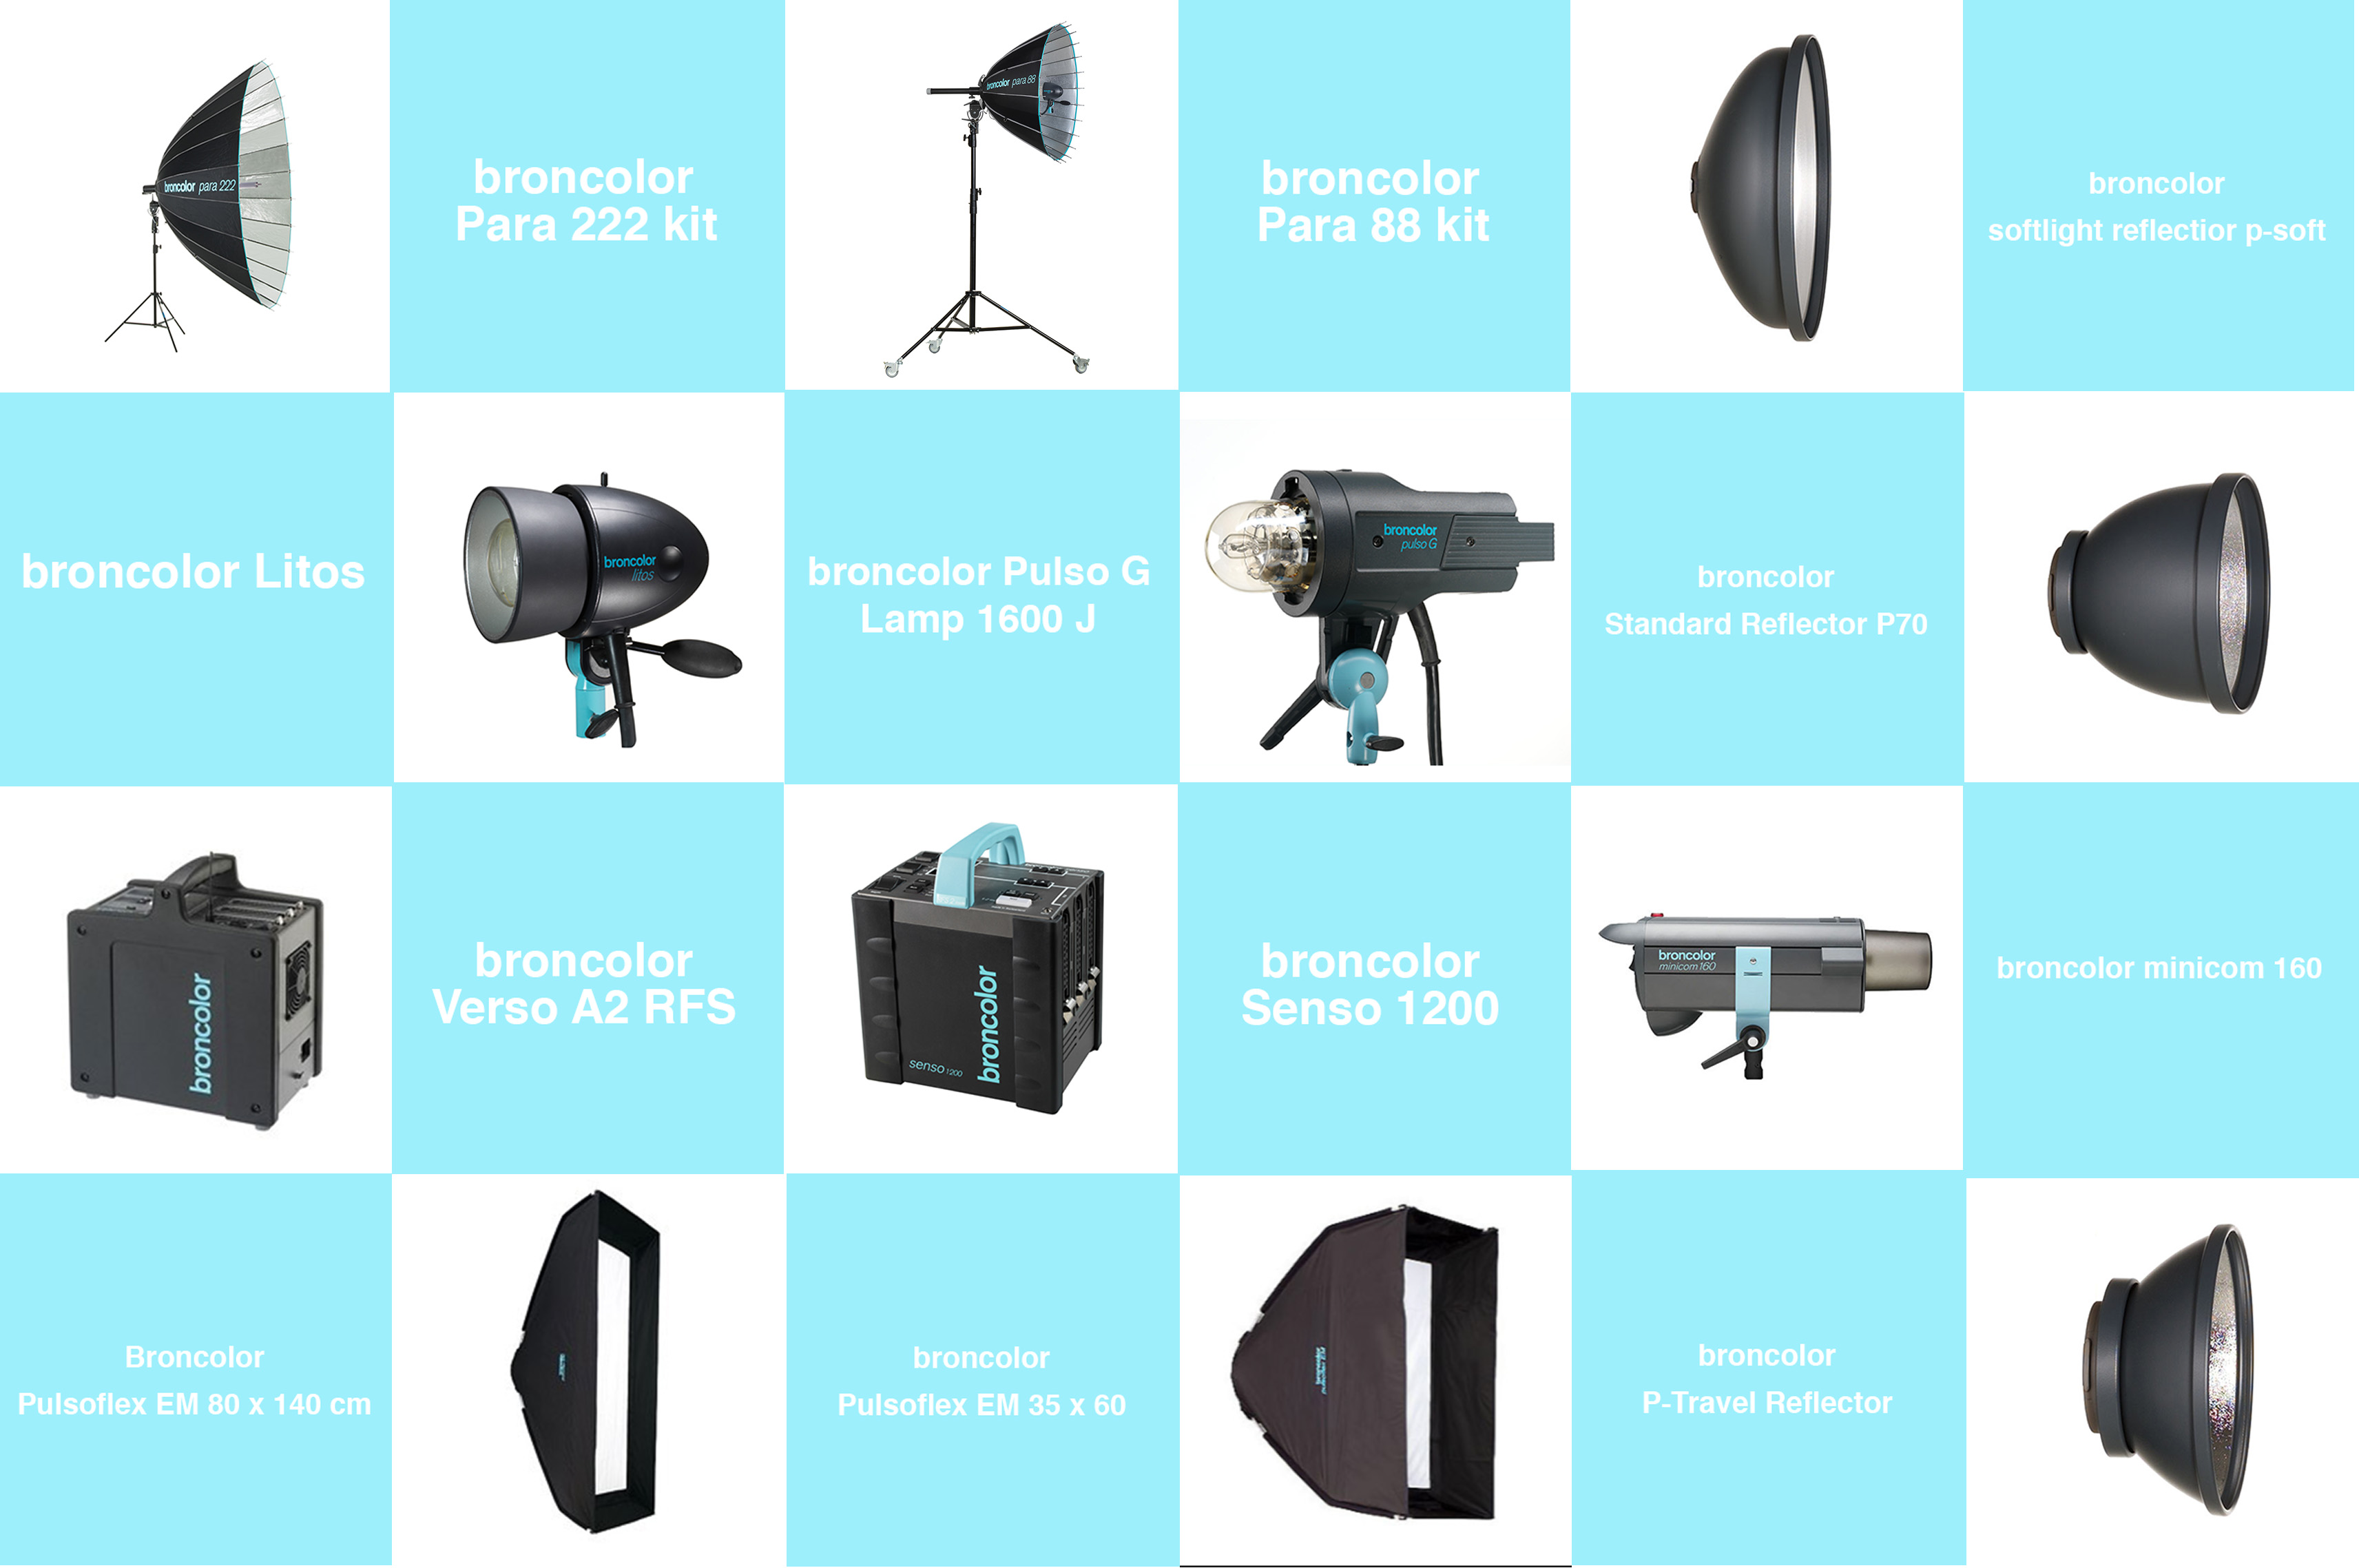 broncolor Para 222 kit broncolor Para 88 kit brancolor para 222 broncolor softlight reflectior p-soft pulso G broncolor Litos broncolor Pulso G Lamp 1600J broncolor Standard Reflector P70 broncolor Verso A2 RFS broncolor Senso 1200 broncolor minicom 160 senso 1200 O Broncolor broncolor broncolor Pulsoflex EM 80 x 140 cm Pulsoflex EM 35x 60 P-Travel Reflector,Output device,Font,Technology,Electronic device